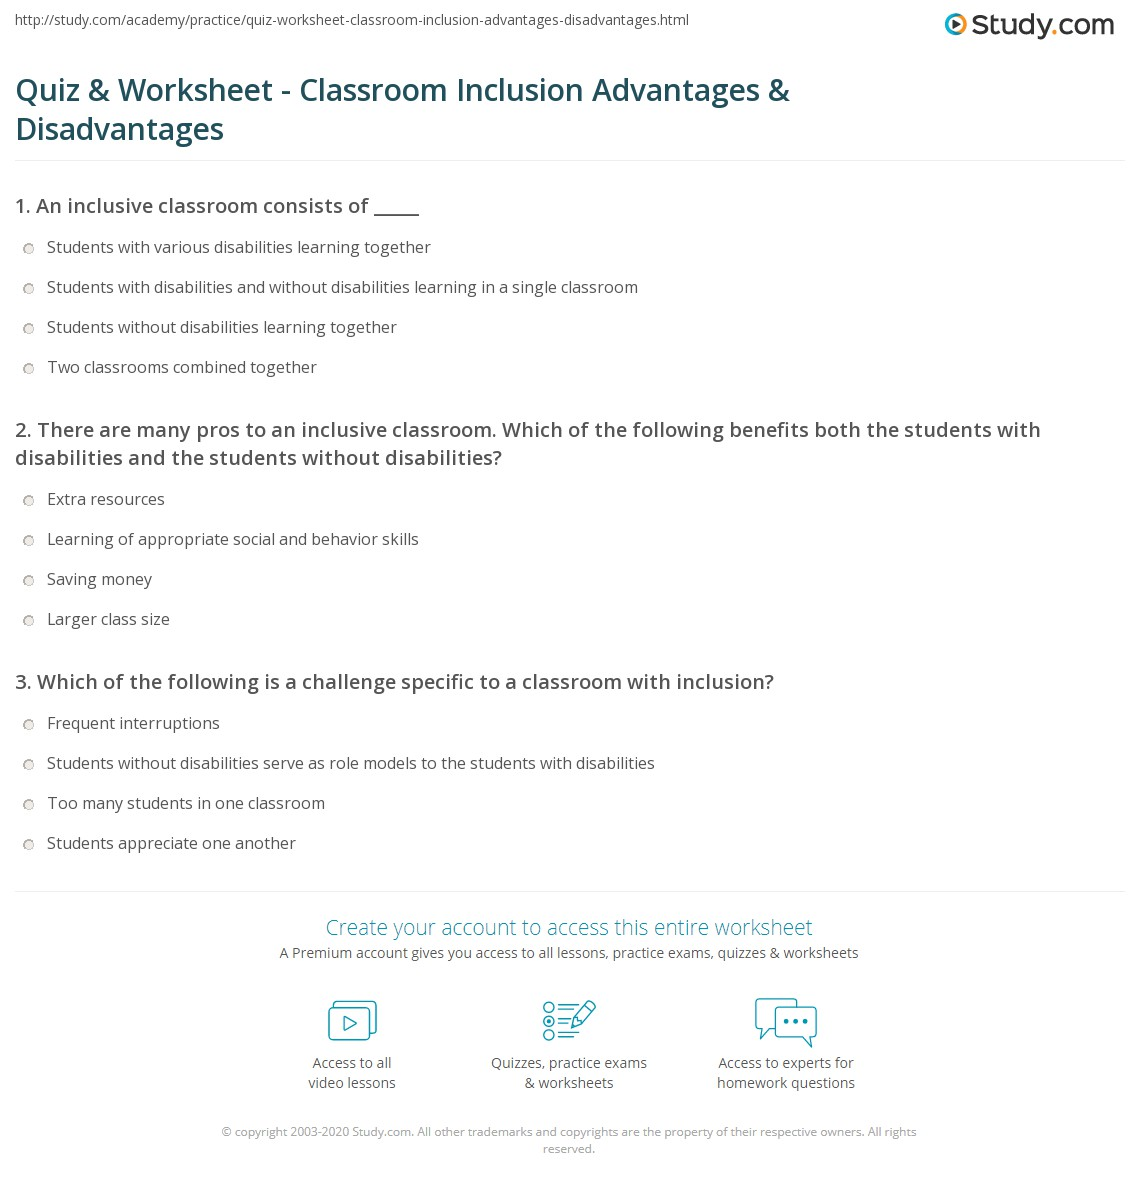 Workbooks quiz worksheets : Quiz & Worksheet - Classroom Inclusion Advantages & Disadvantages ...